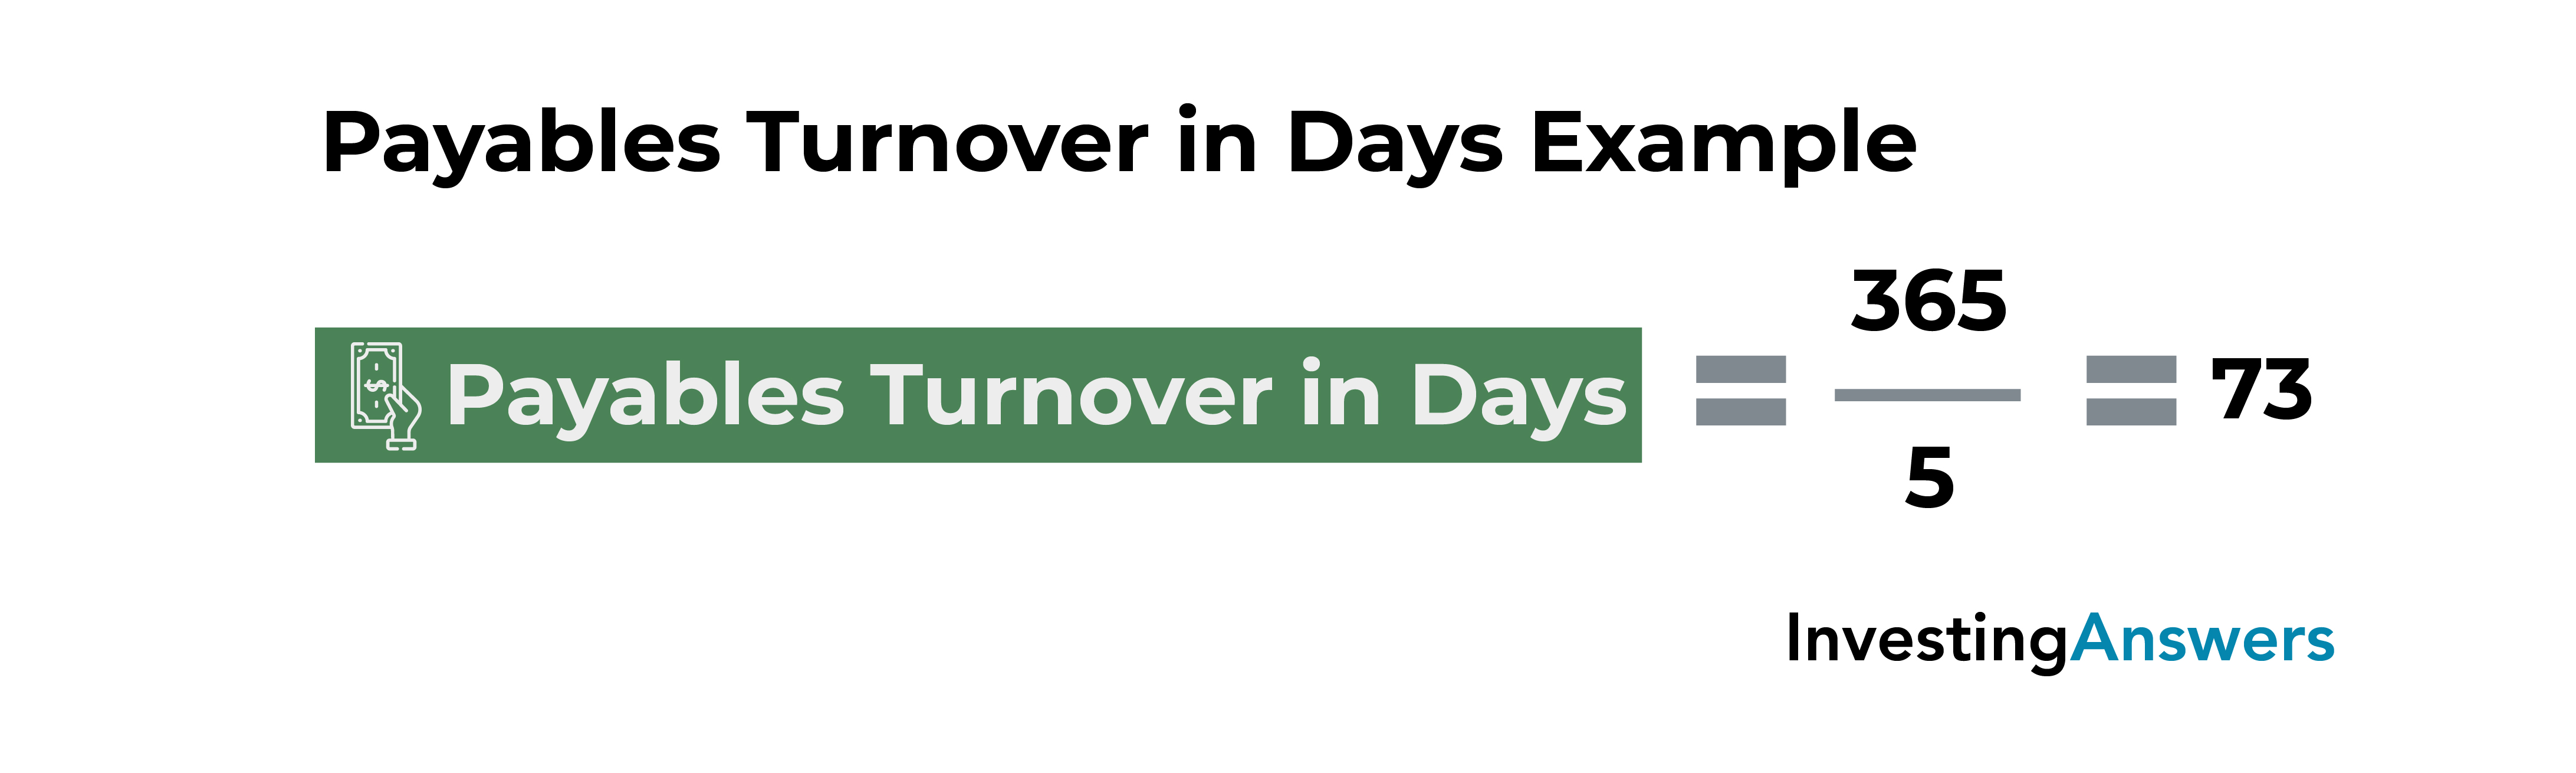 payables turnover in days